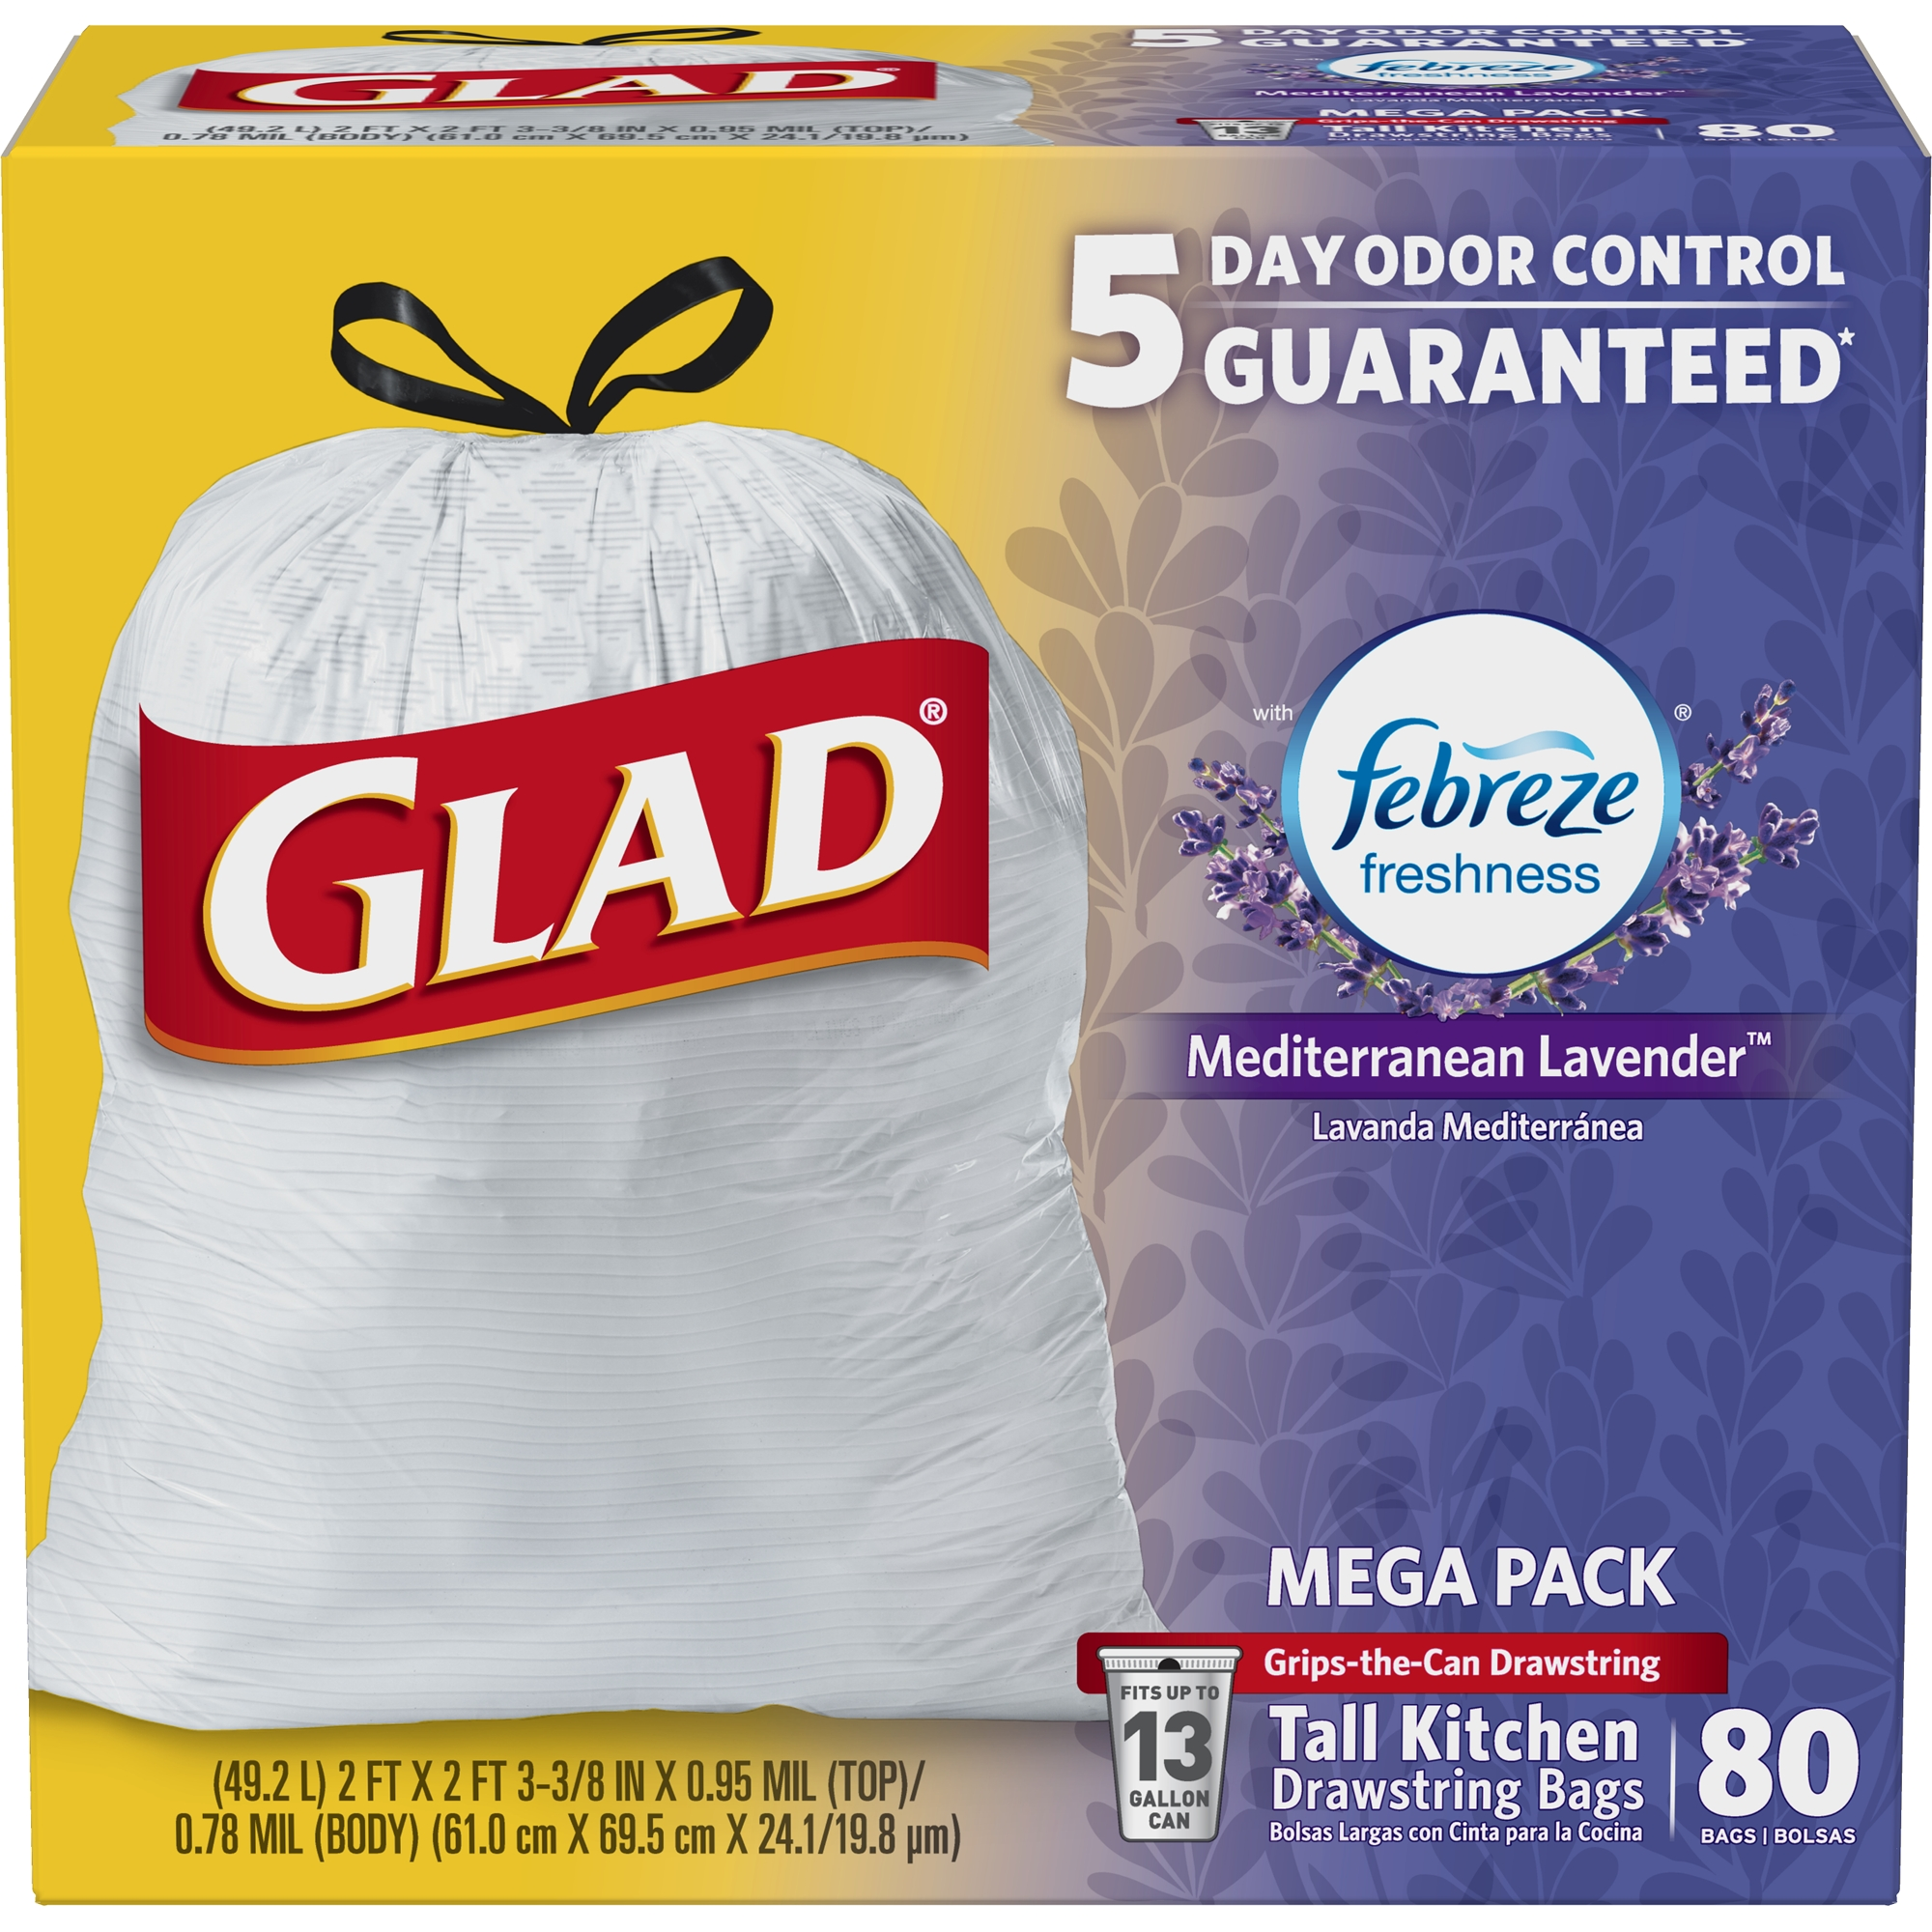 Glad OdorShield Tall Kitchen Drawstring Trash Bags - Febreze Mediterranean Lavender - 13 gal - 80 ct